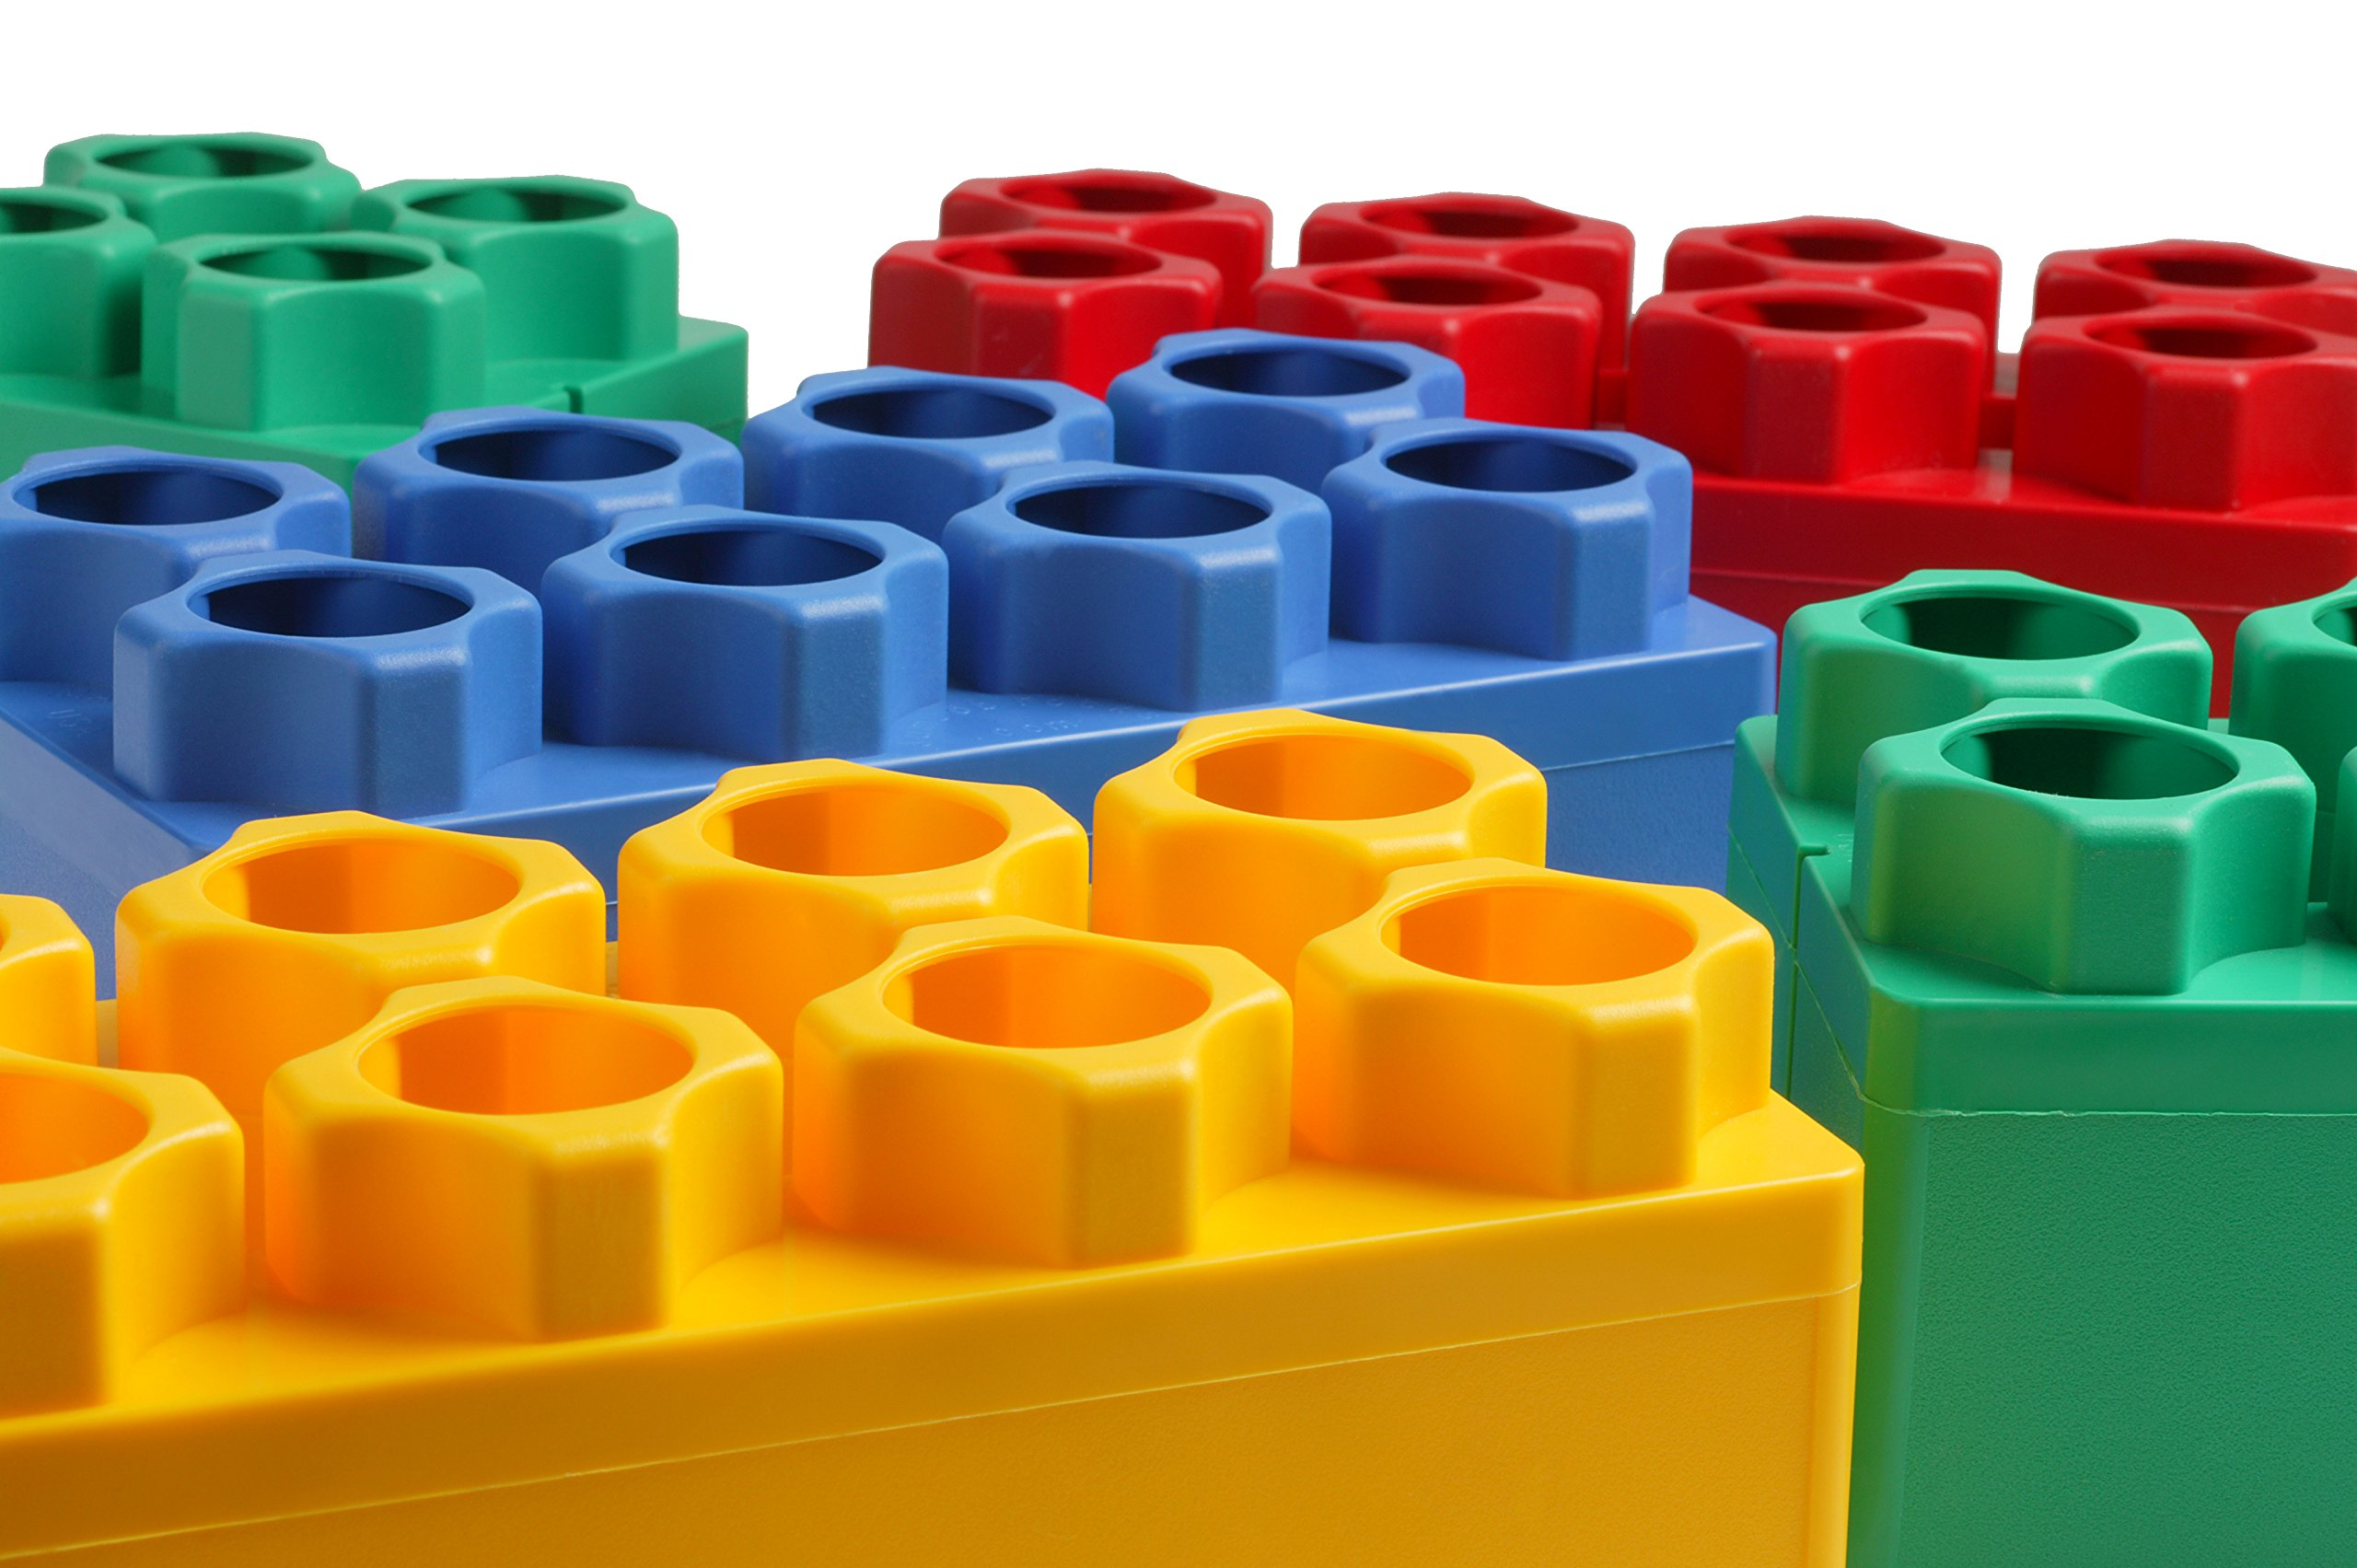 96pc Jumbo Blocks - Standard Set (Made in the USA) by Kids Adventure (Image #4)